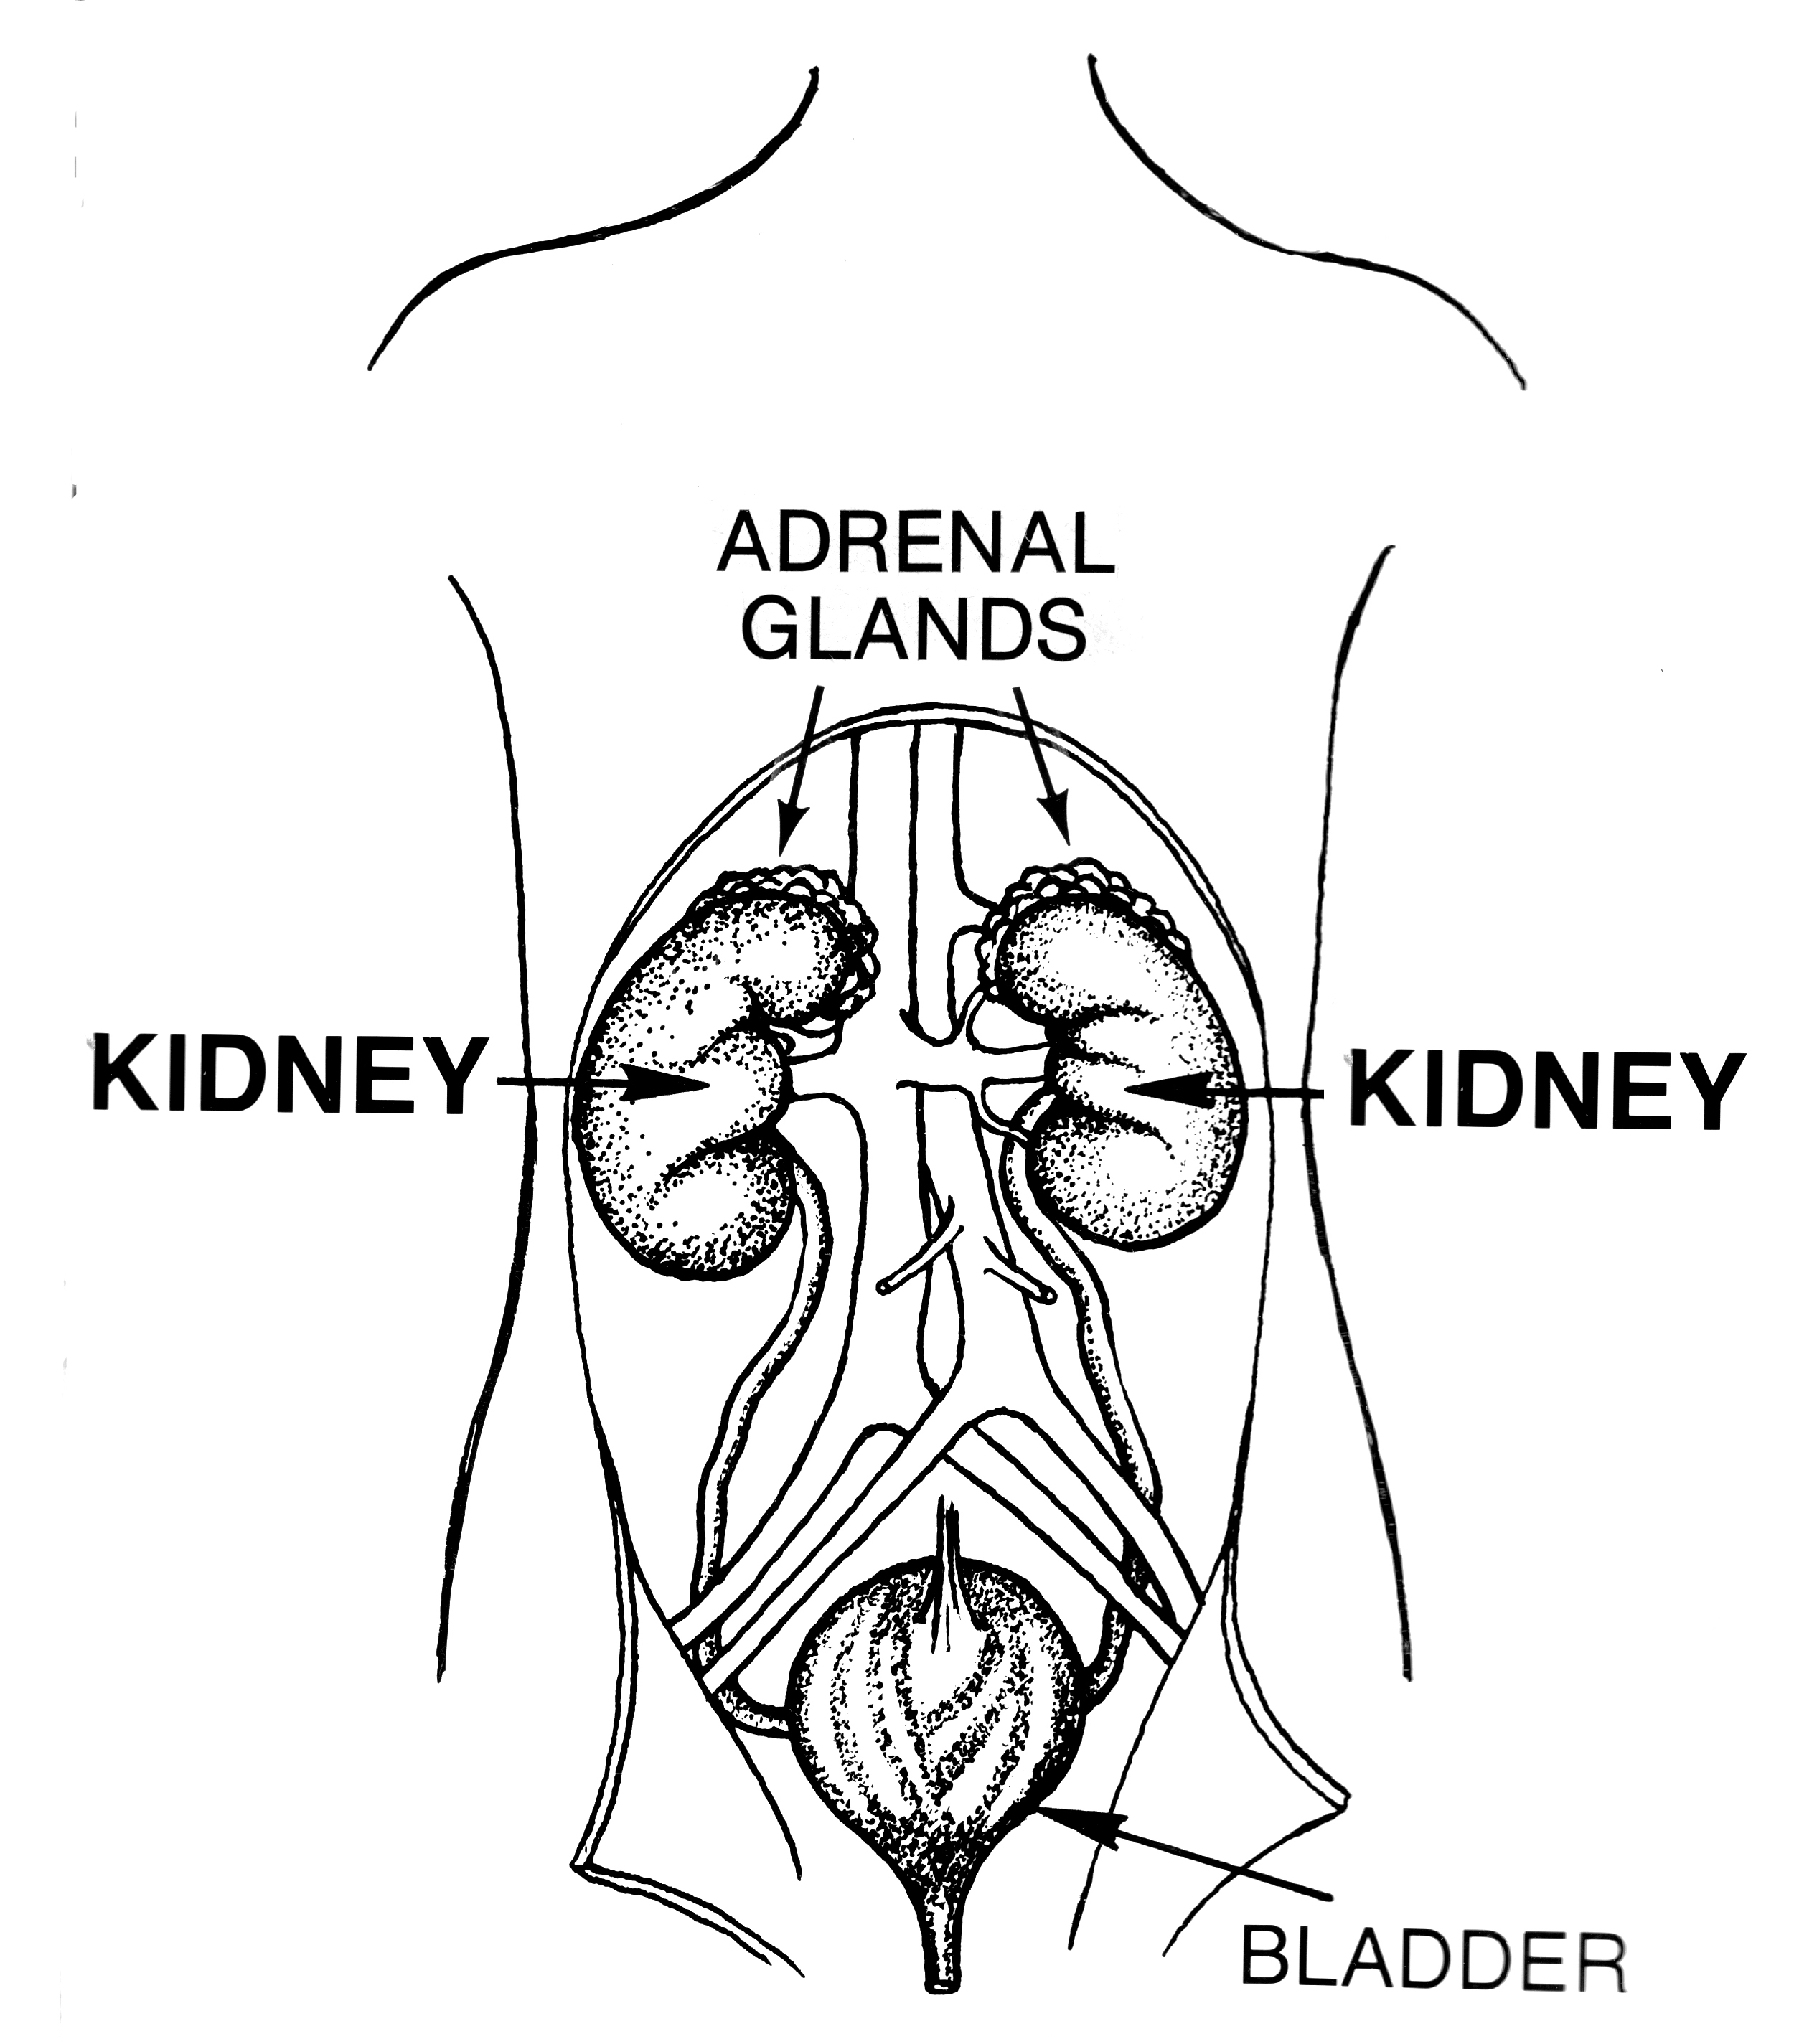 Kidneys, adrenal glands, bladder, diagram